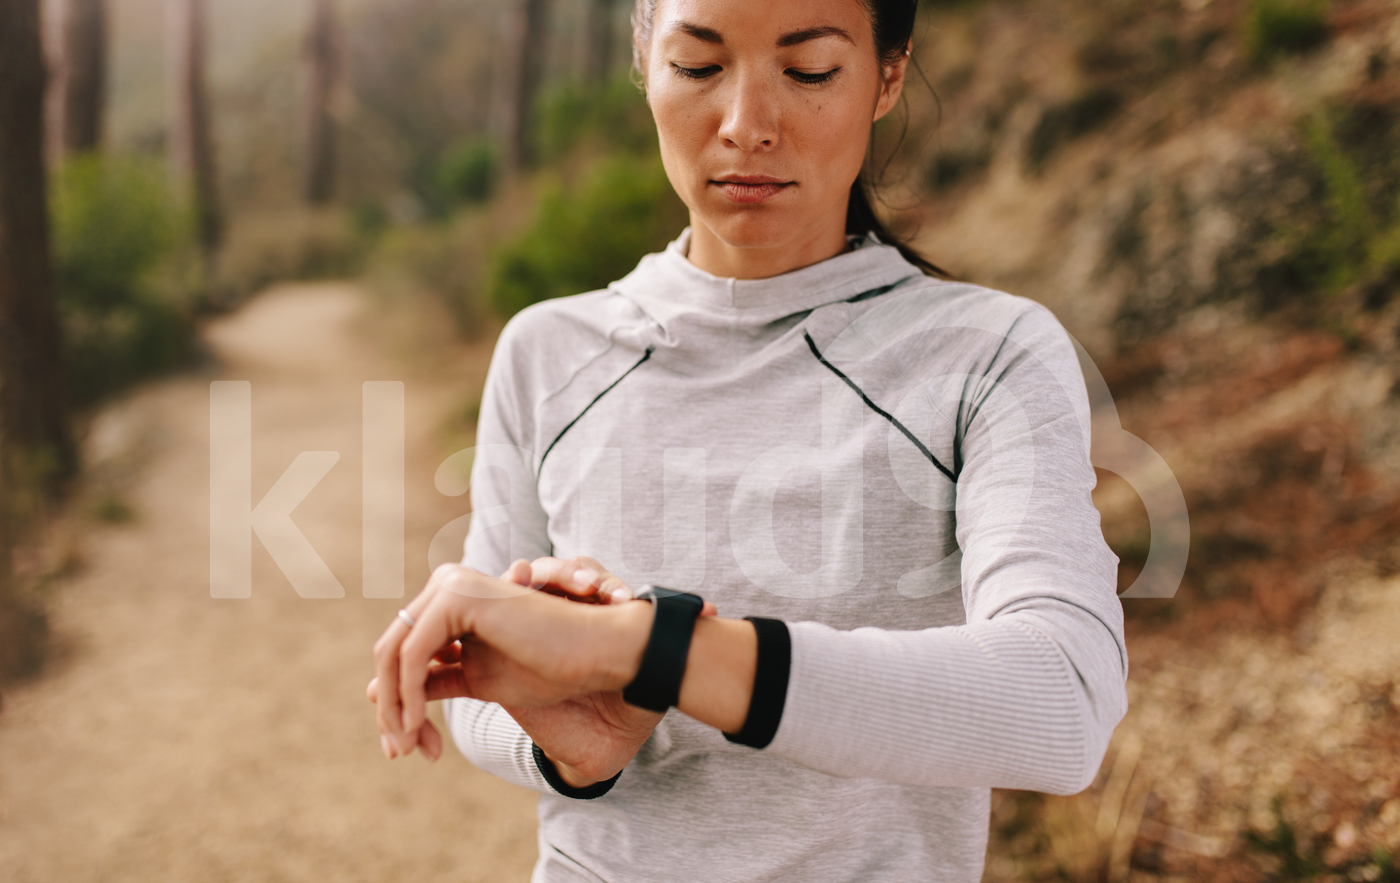 Young fitness woman runner checking time on smart watch.